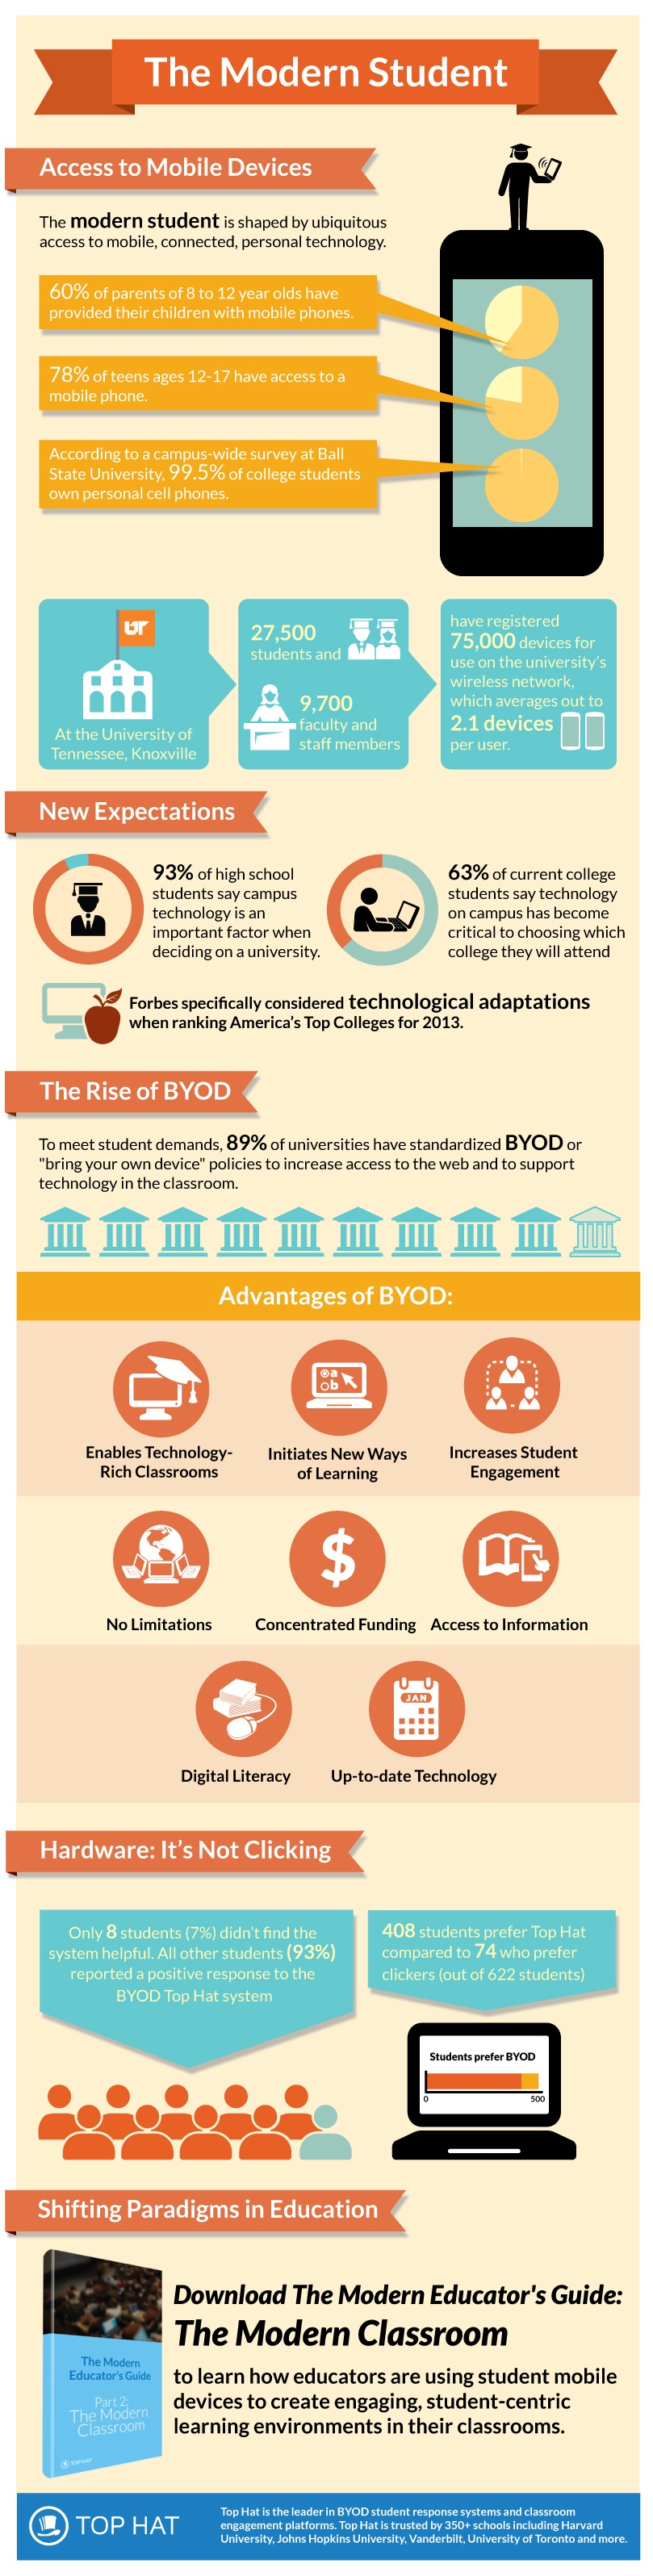 The Modern Student Infographic